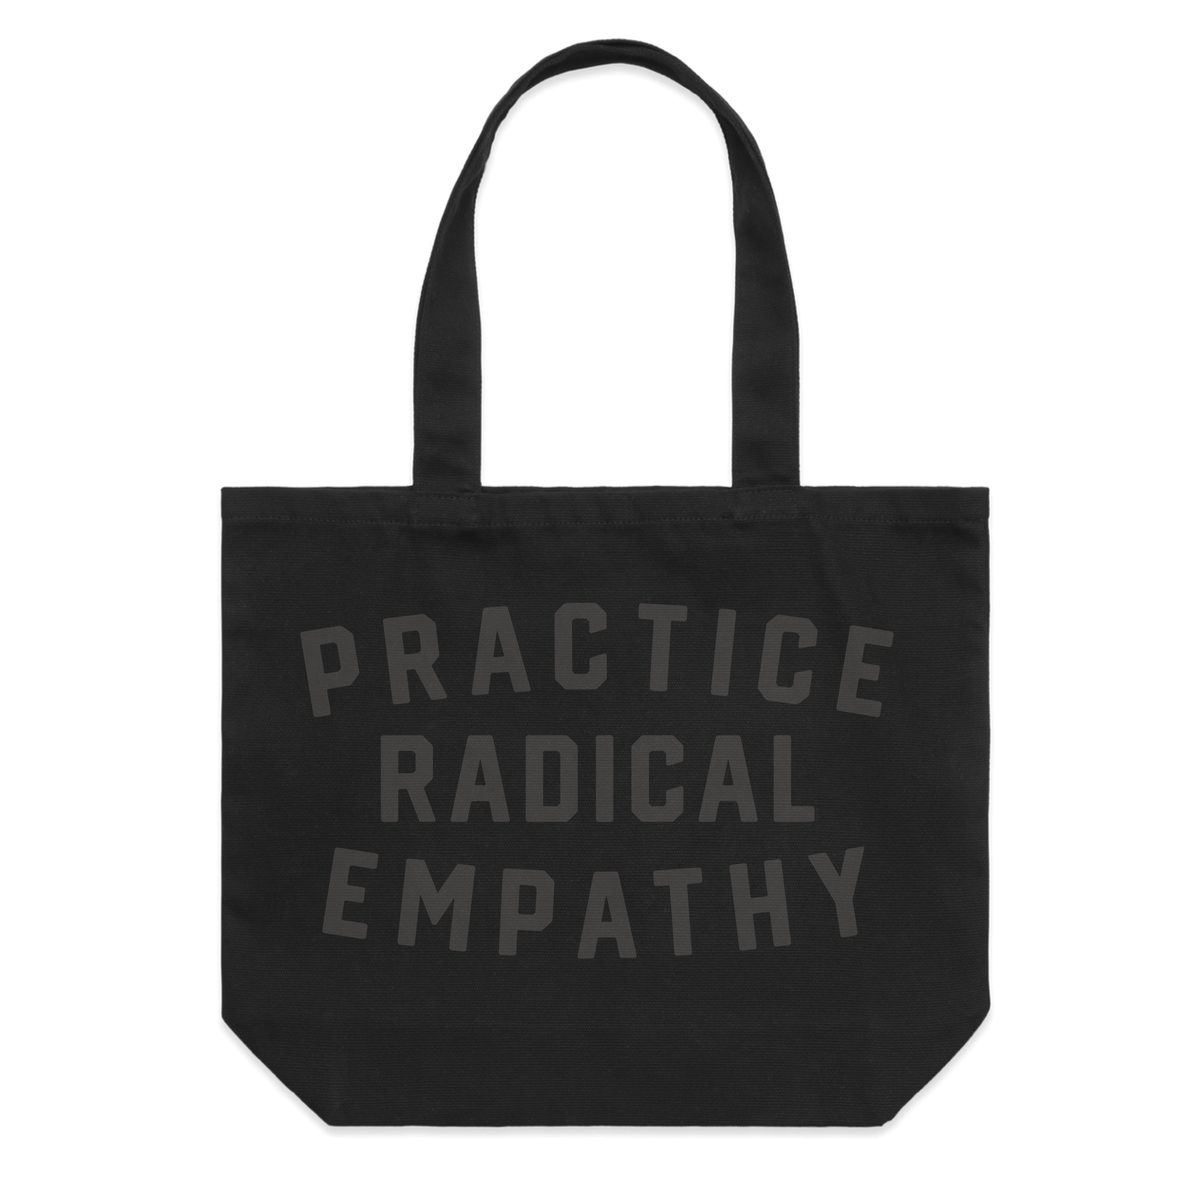 Practice Radical Empathy Tote Bag - Black Canvas